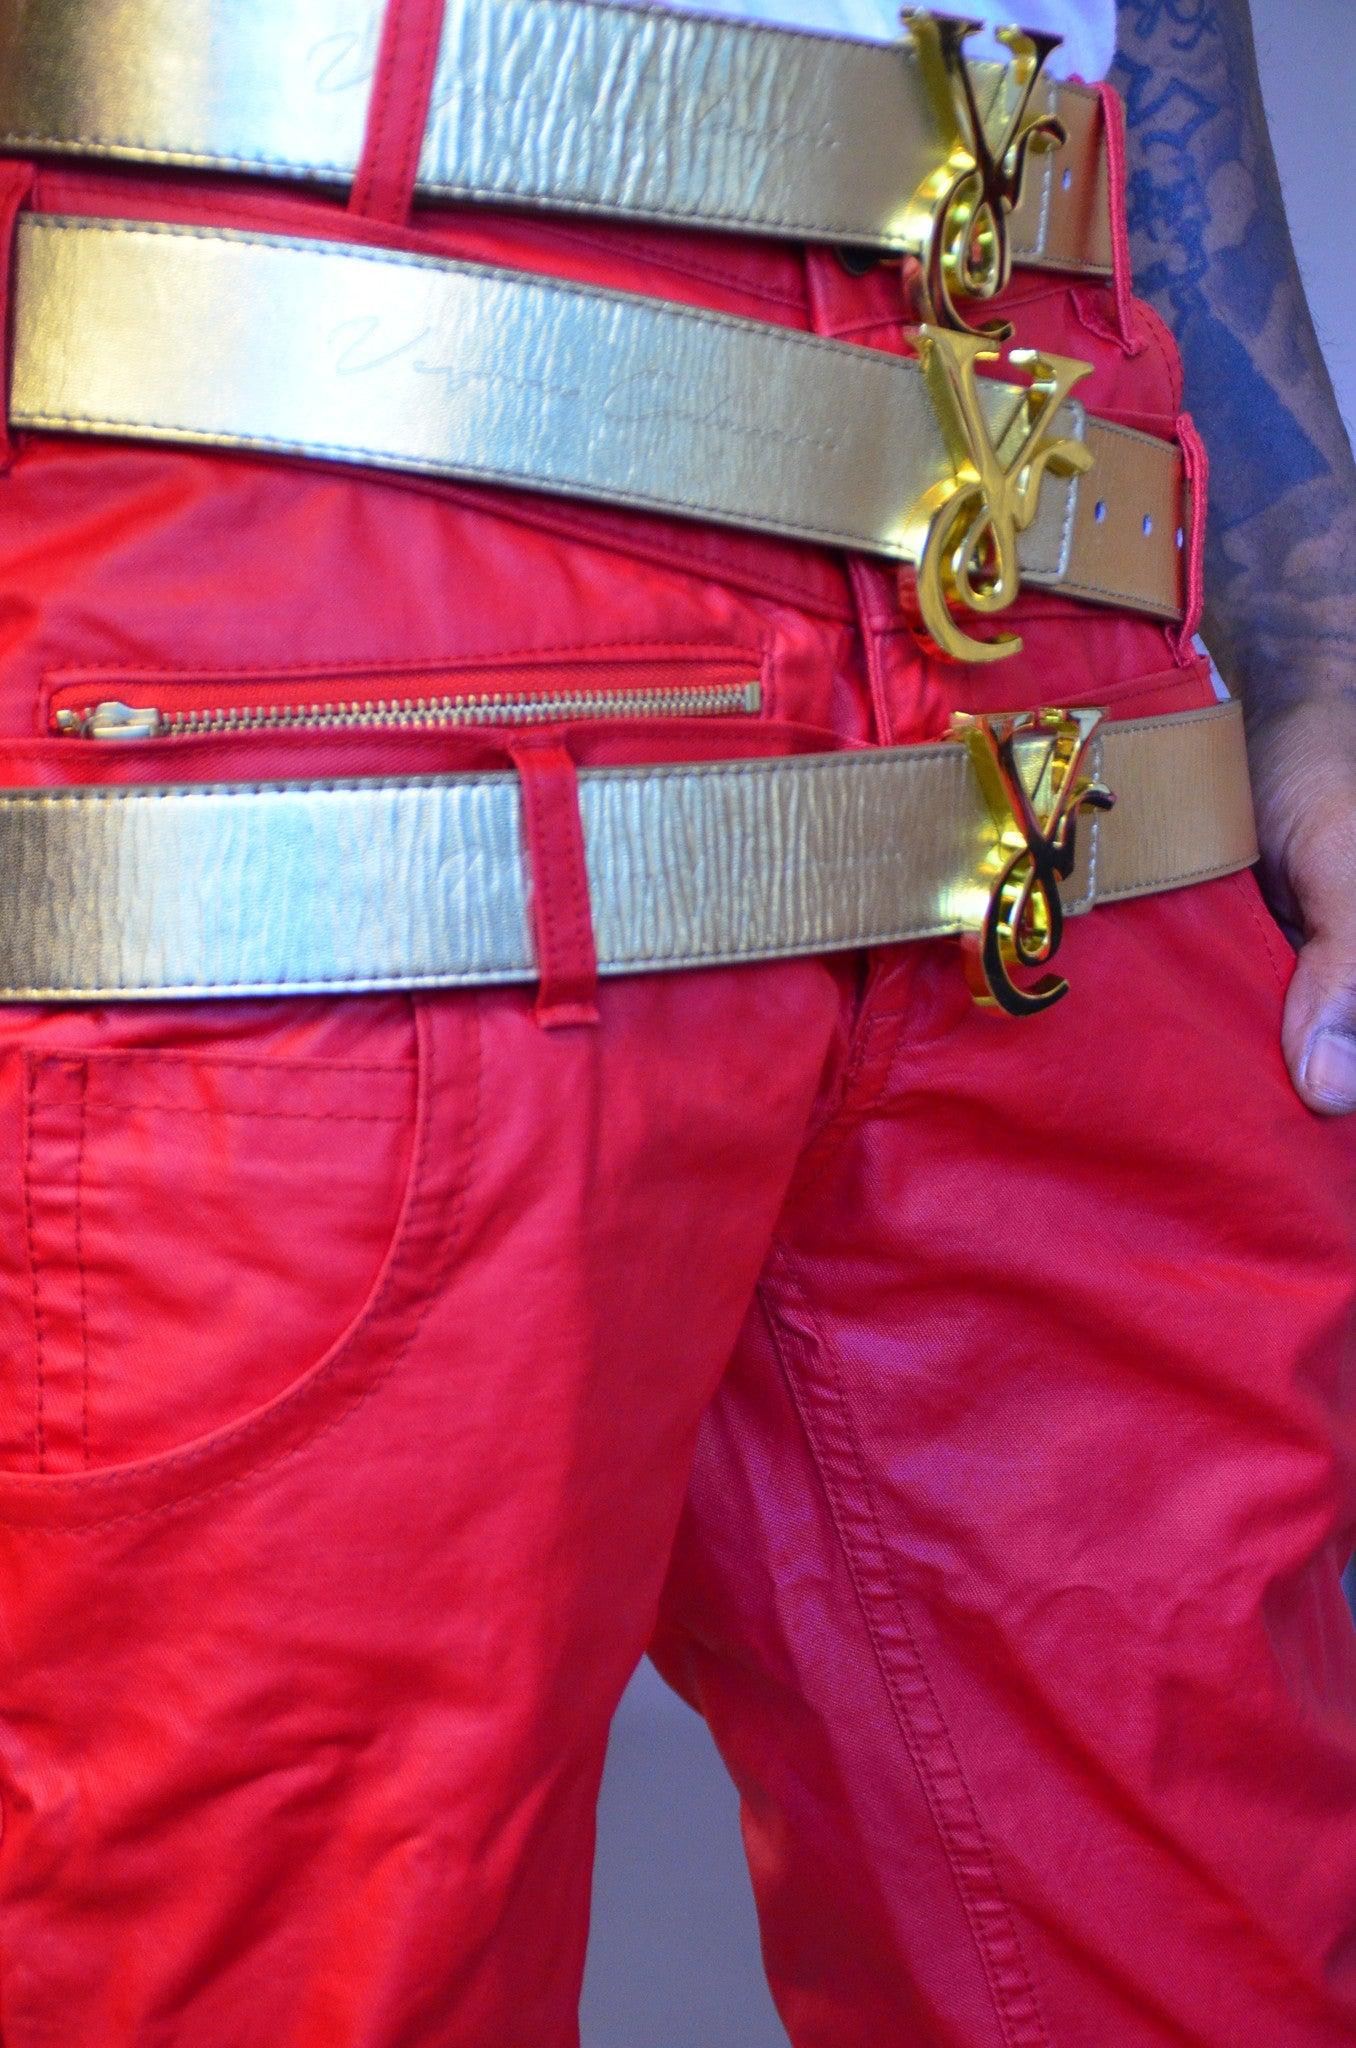 28e5a9fe0 VC 24K Gold Buckle with Red   White Reversible Leather Belt Strap - Veyron  Calanari